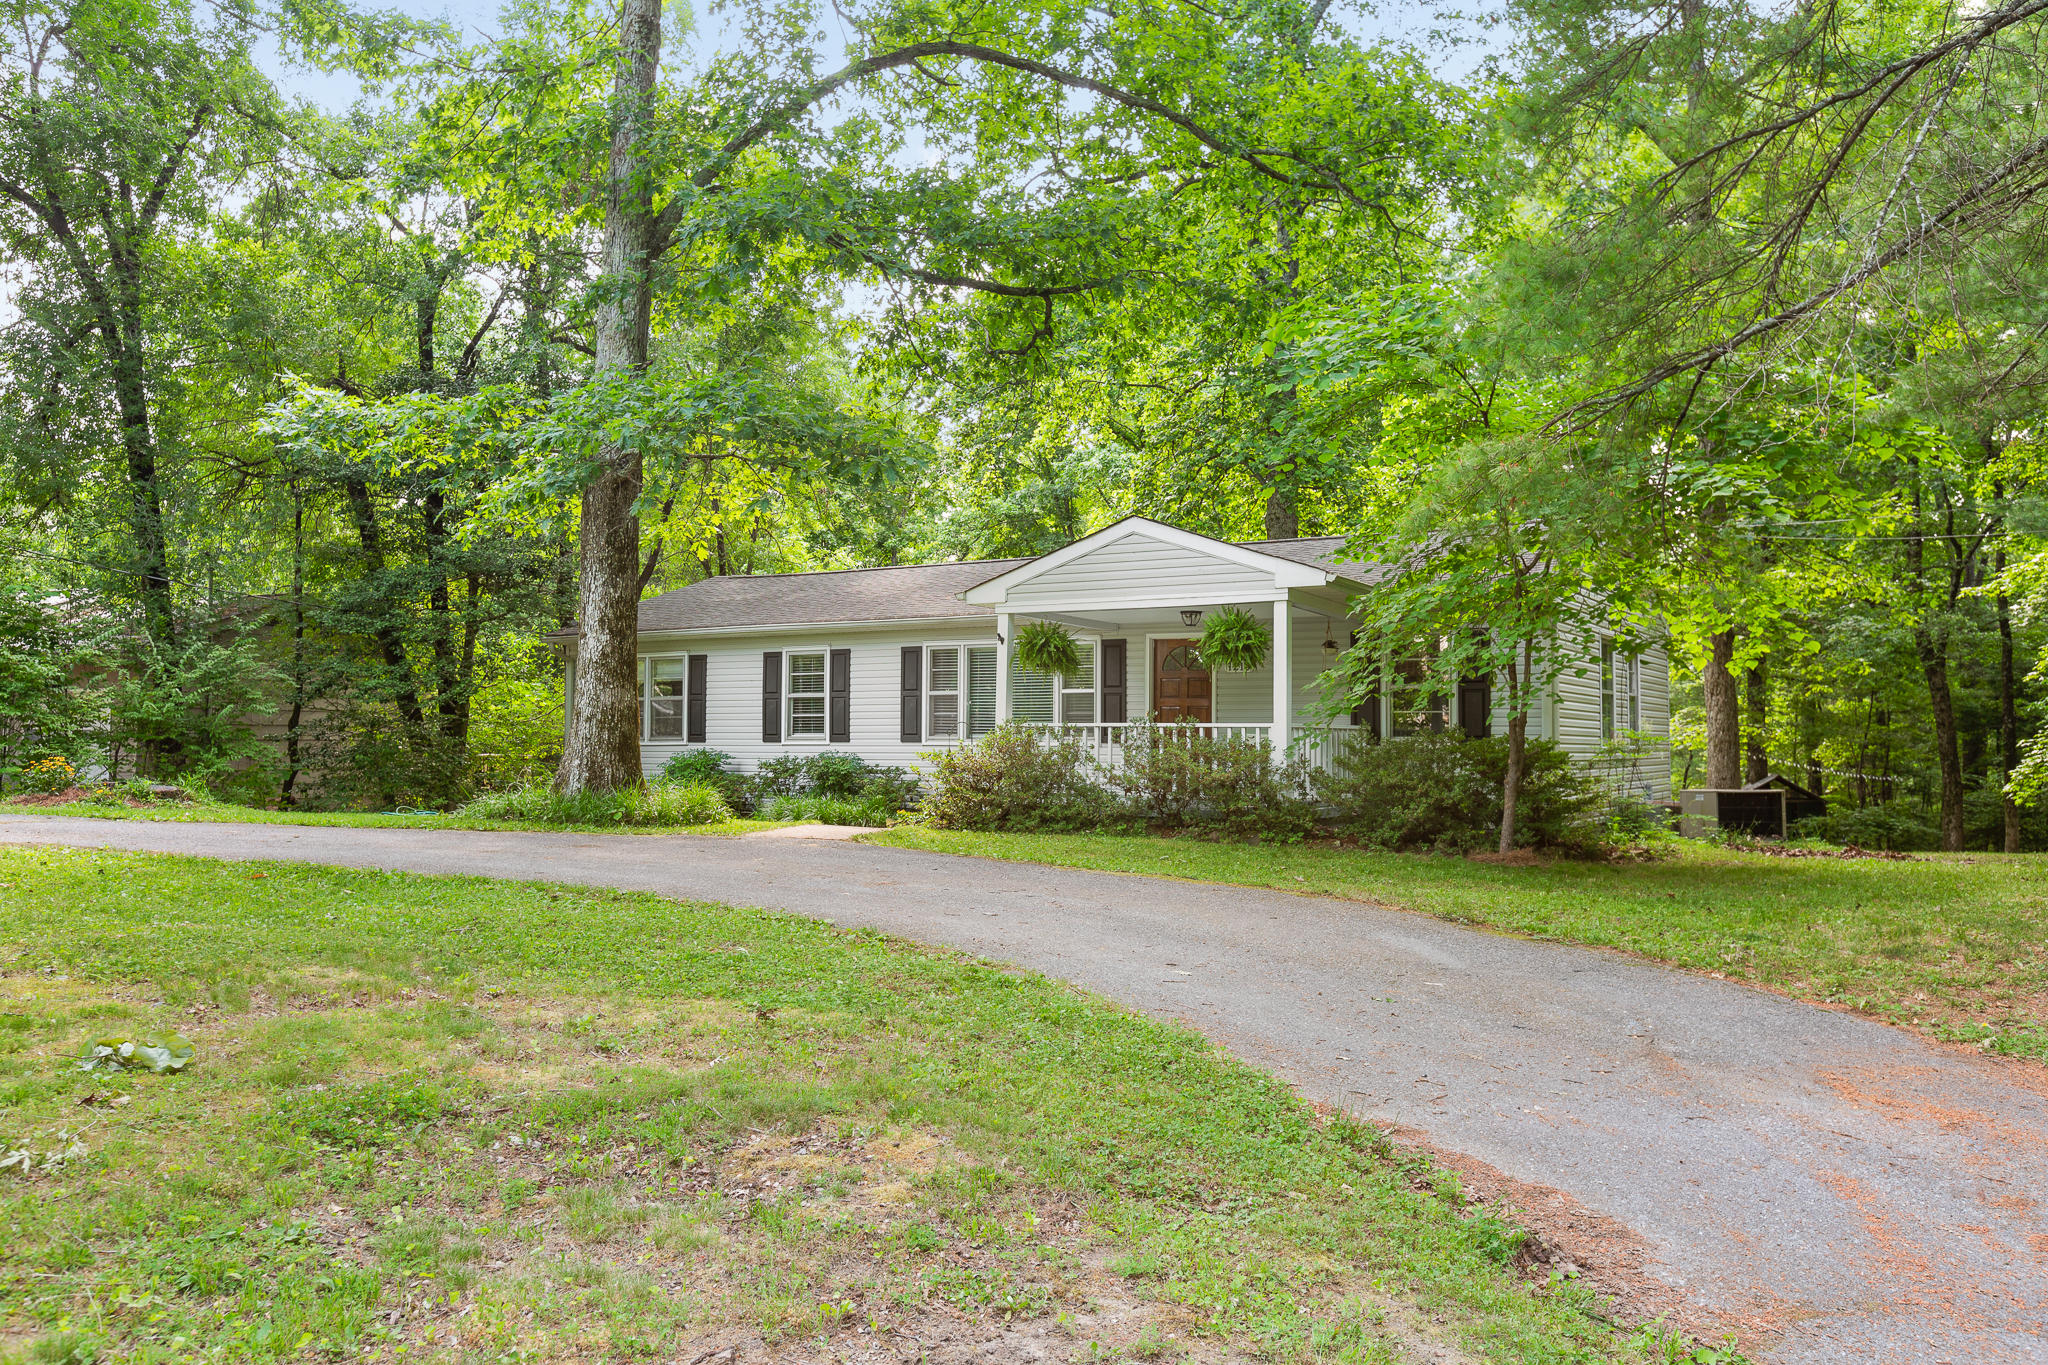 1216 James Blvd, Signal Mountain, TN 37377